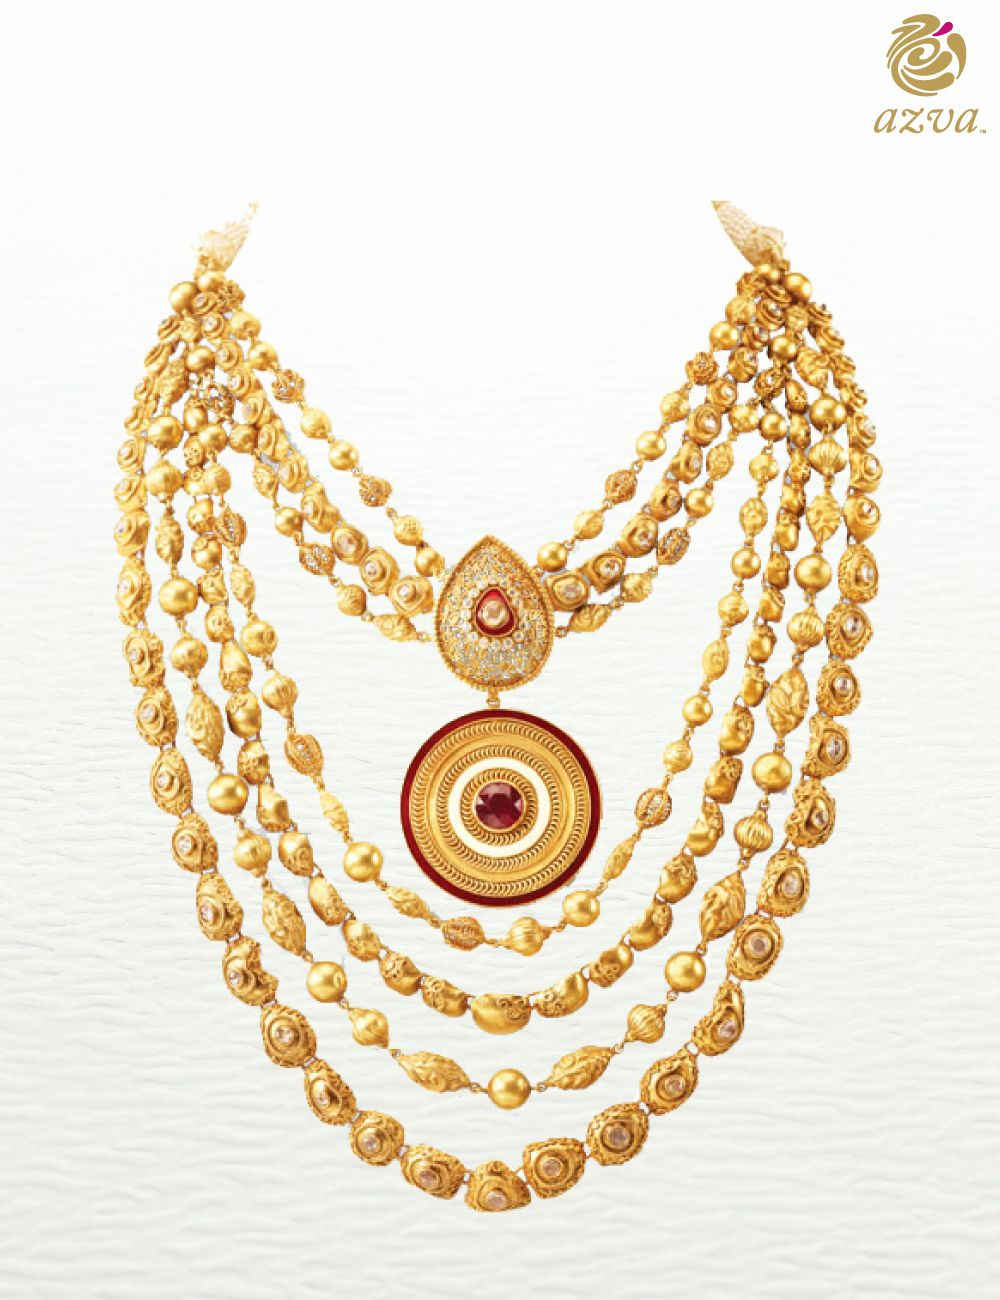 22 carat gold floral designer pendant with multiple beads chain and - 22 Karat Gold Seven Rows Haar With Handcrafted Beads Bold Pendant With Filigree Work